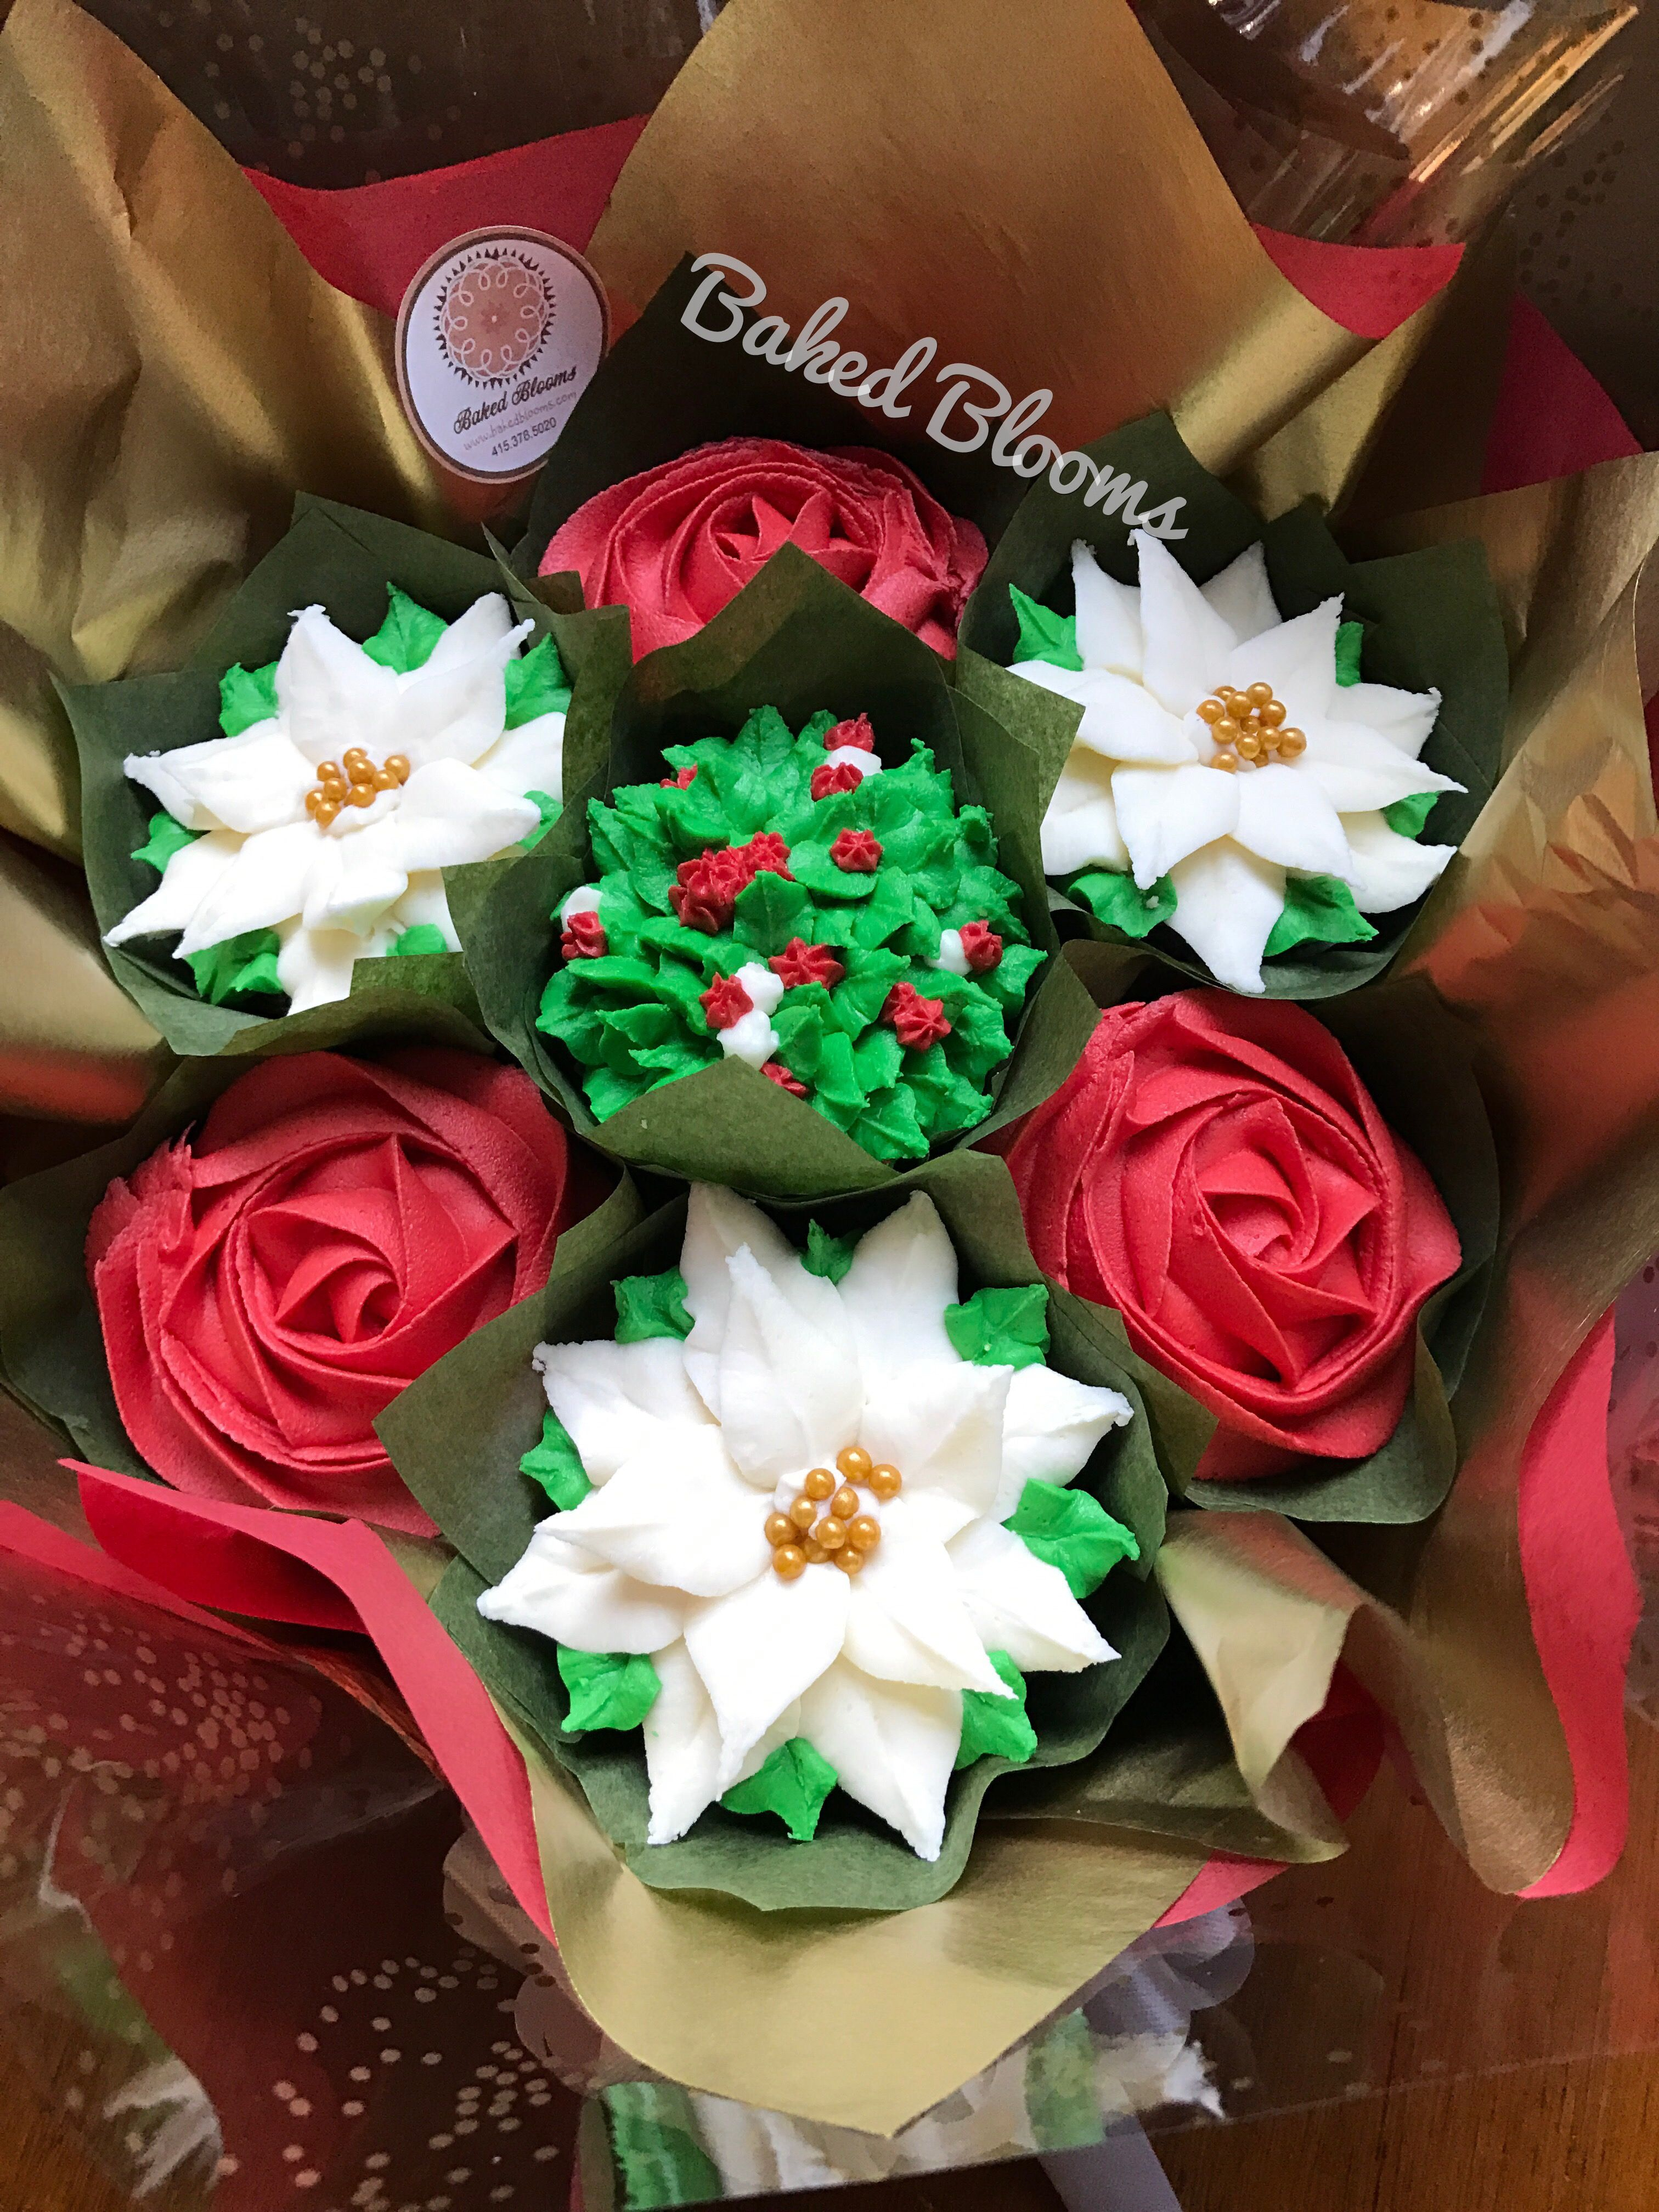 Small festive bouquet bakedblooms baked blooms pinterest small festive bouquet bakedblooms izmirmasajfo